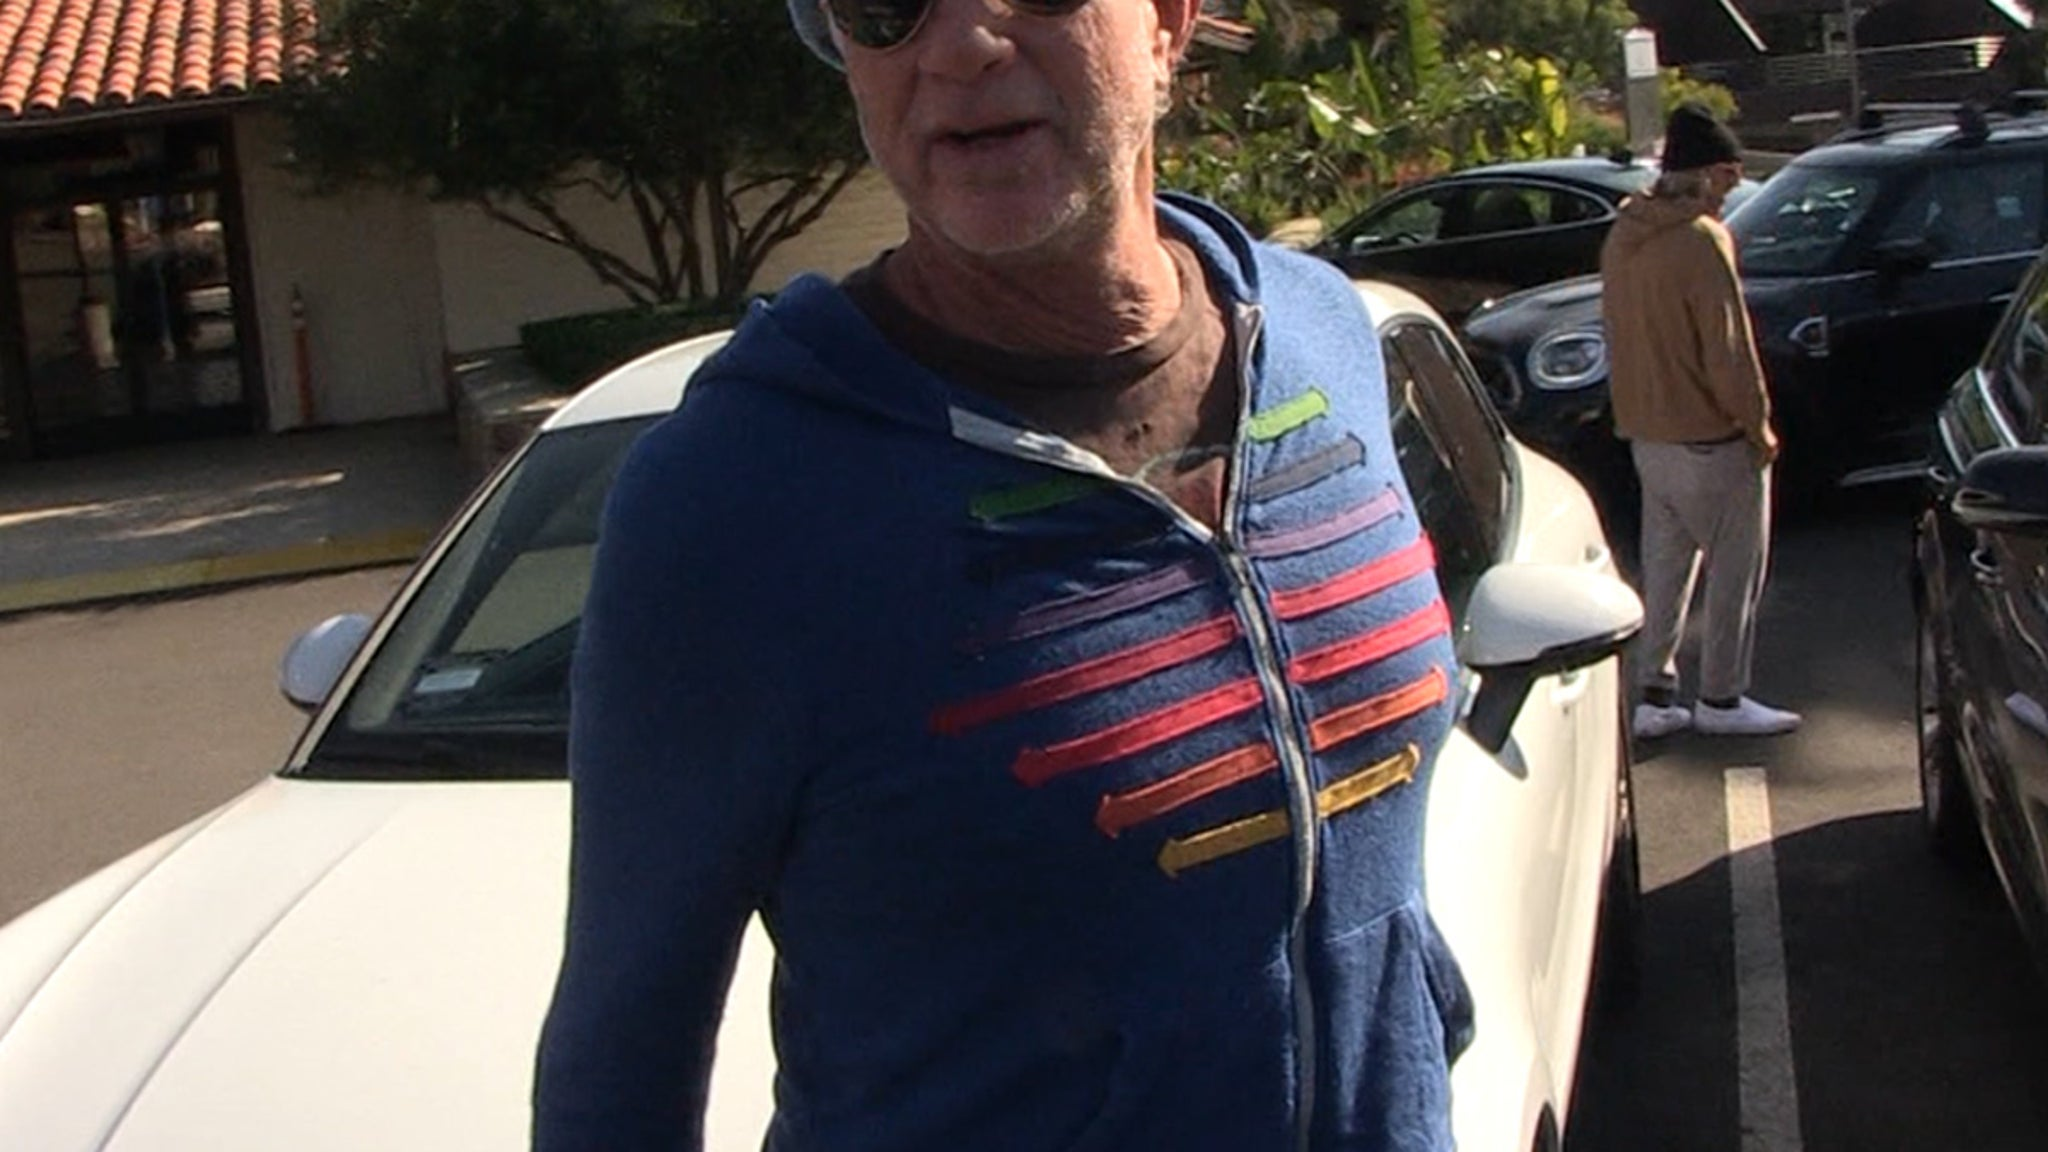 RHCP Drummer Chad Smith Lakers Will Be Fine Despite Bad Losses ... Everybody Chill Out!!!